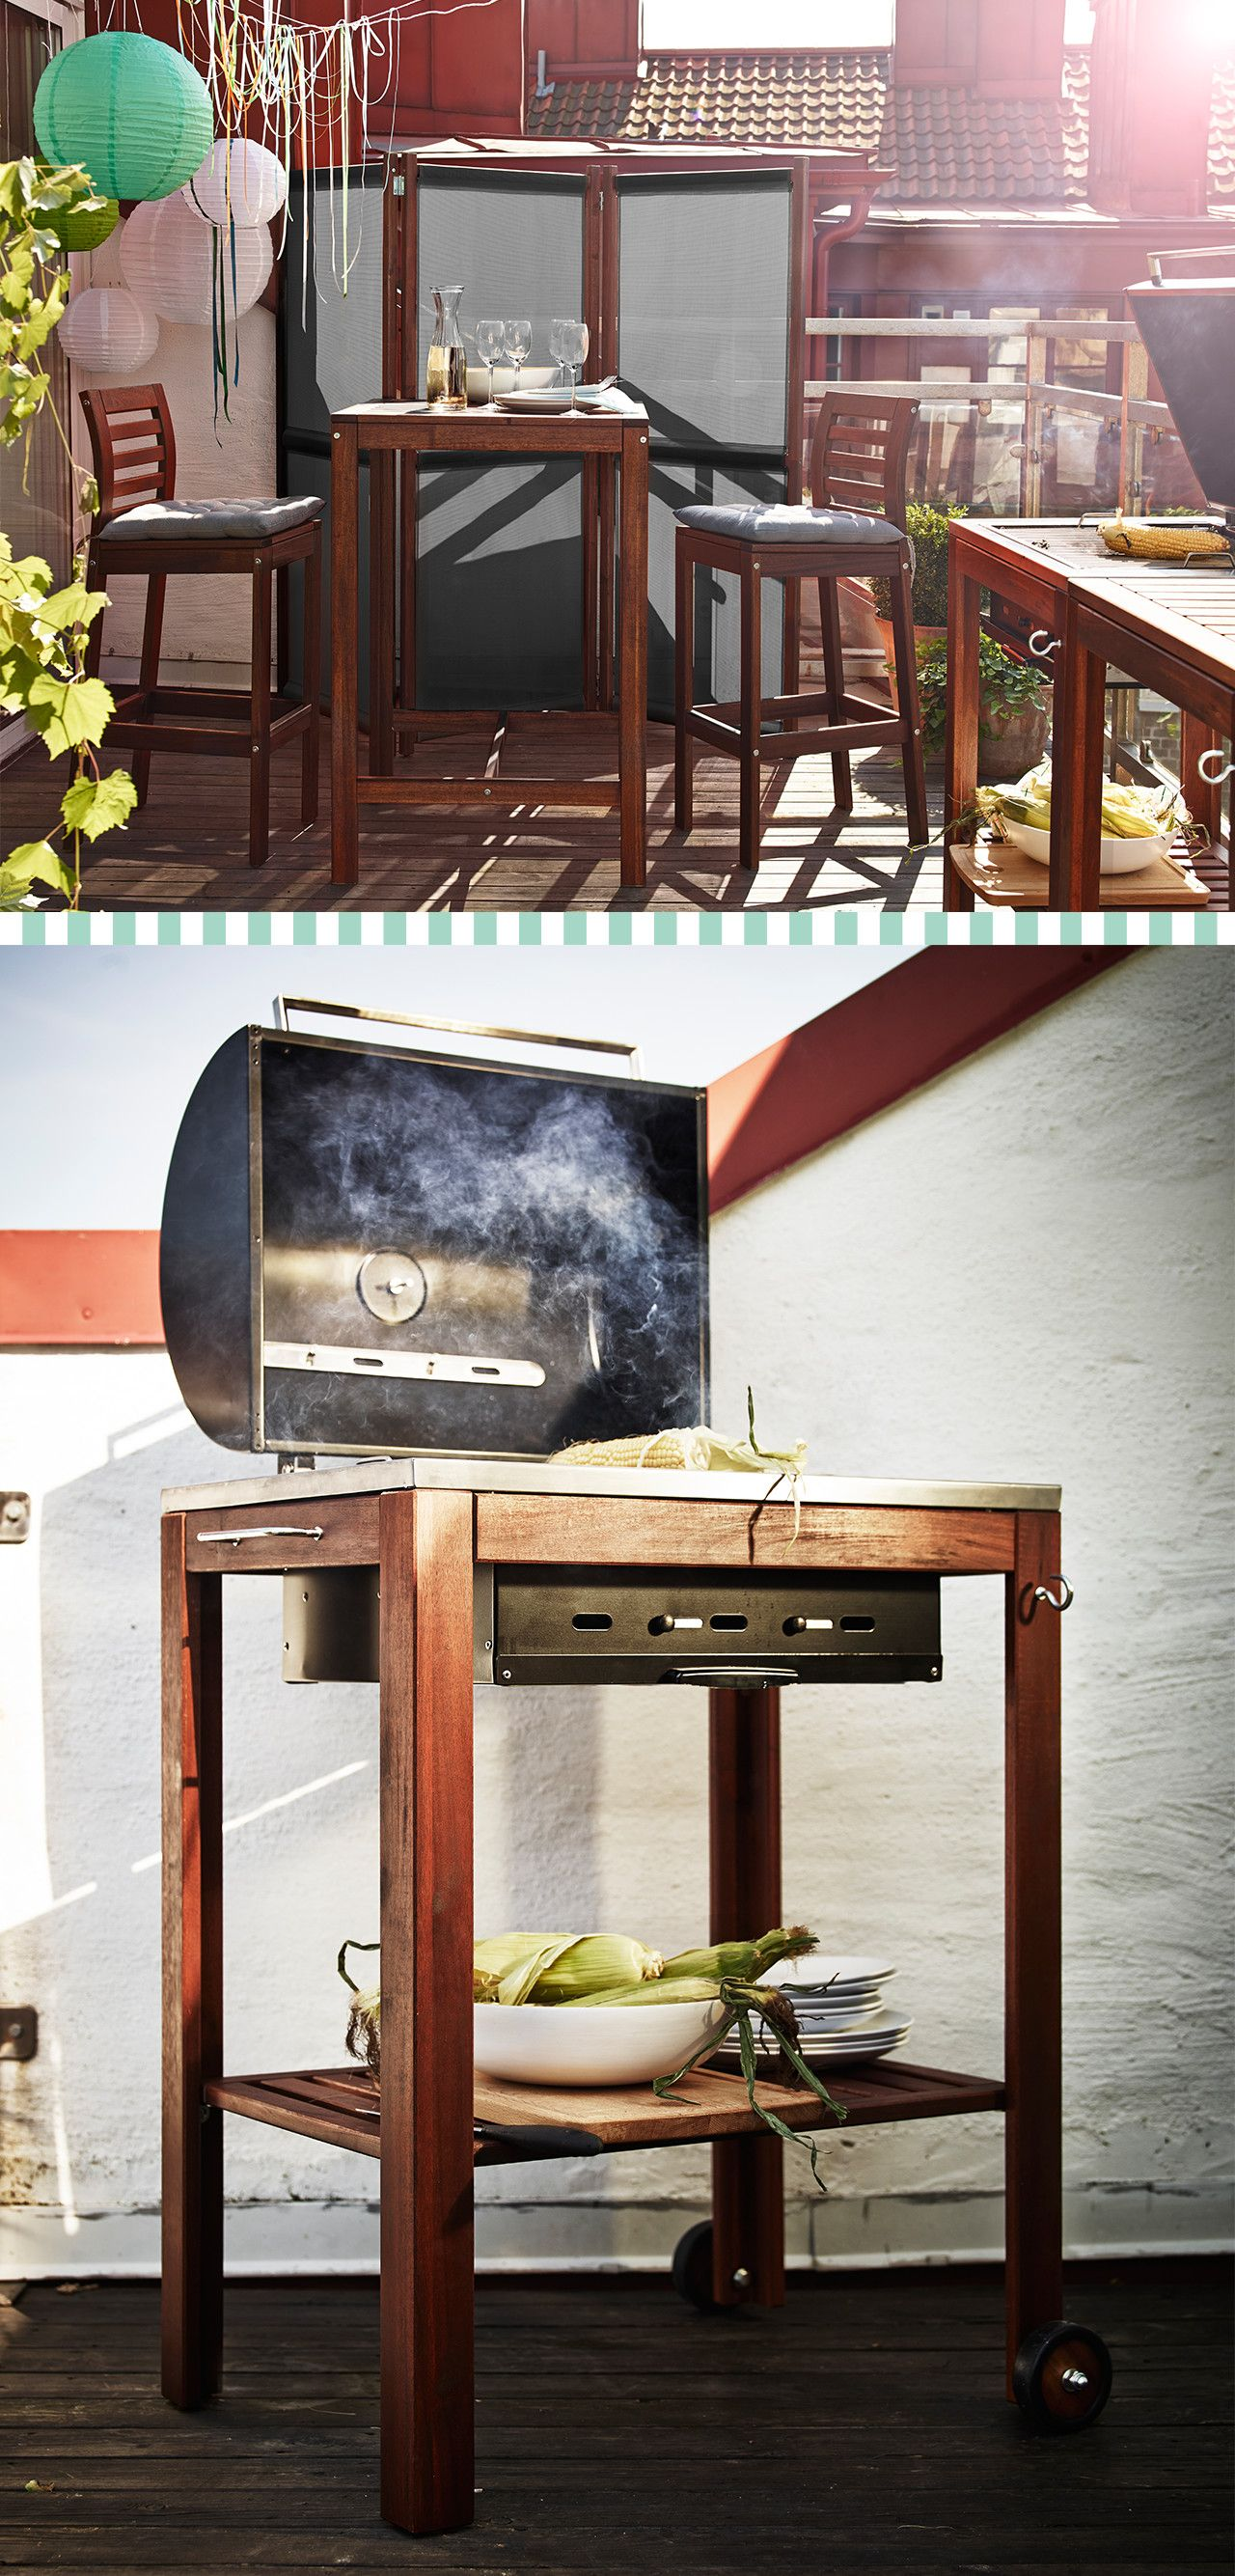 snap! our ÄpplarÖ furniture series lets you match your barbecue to